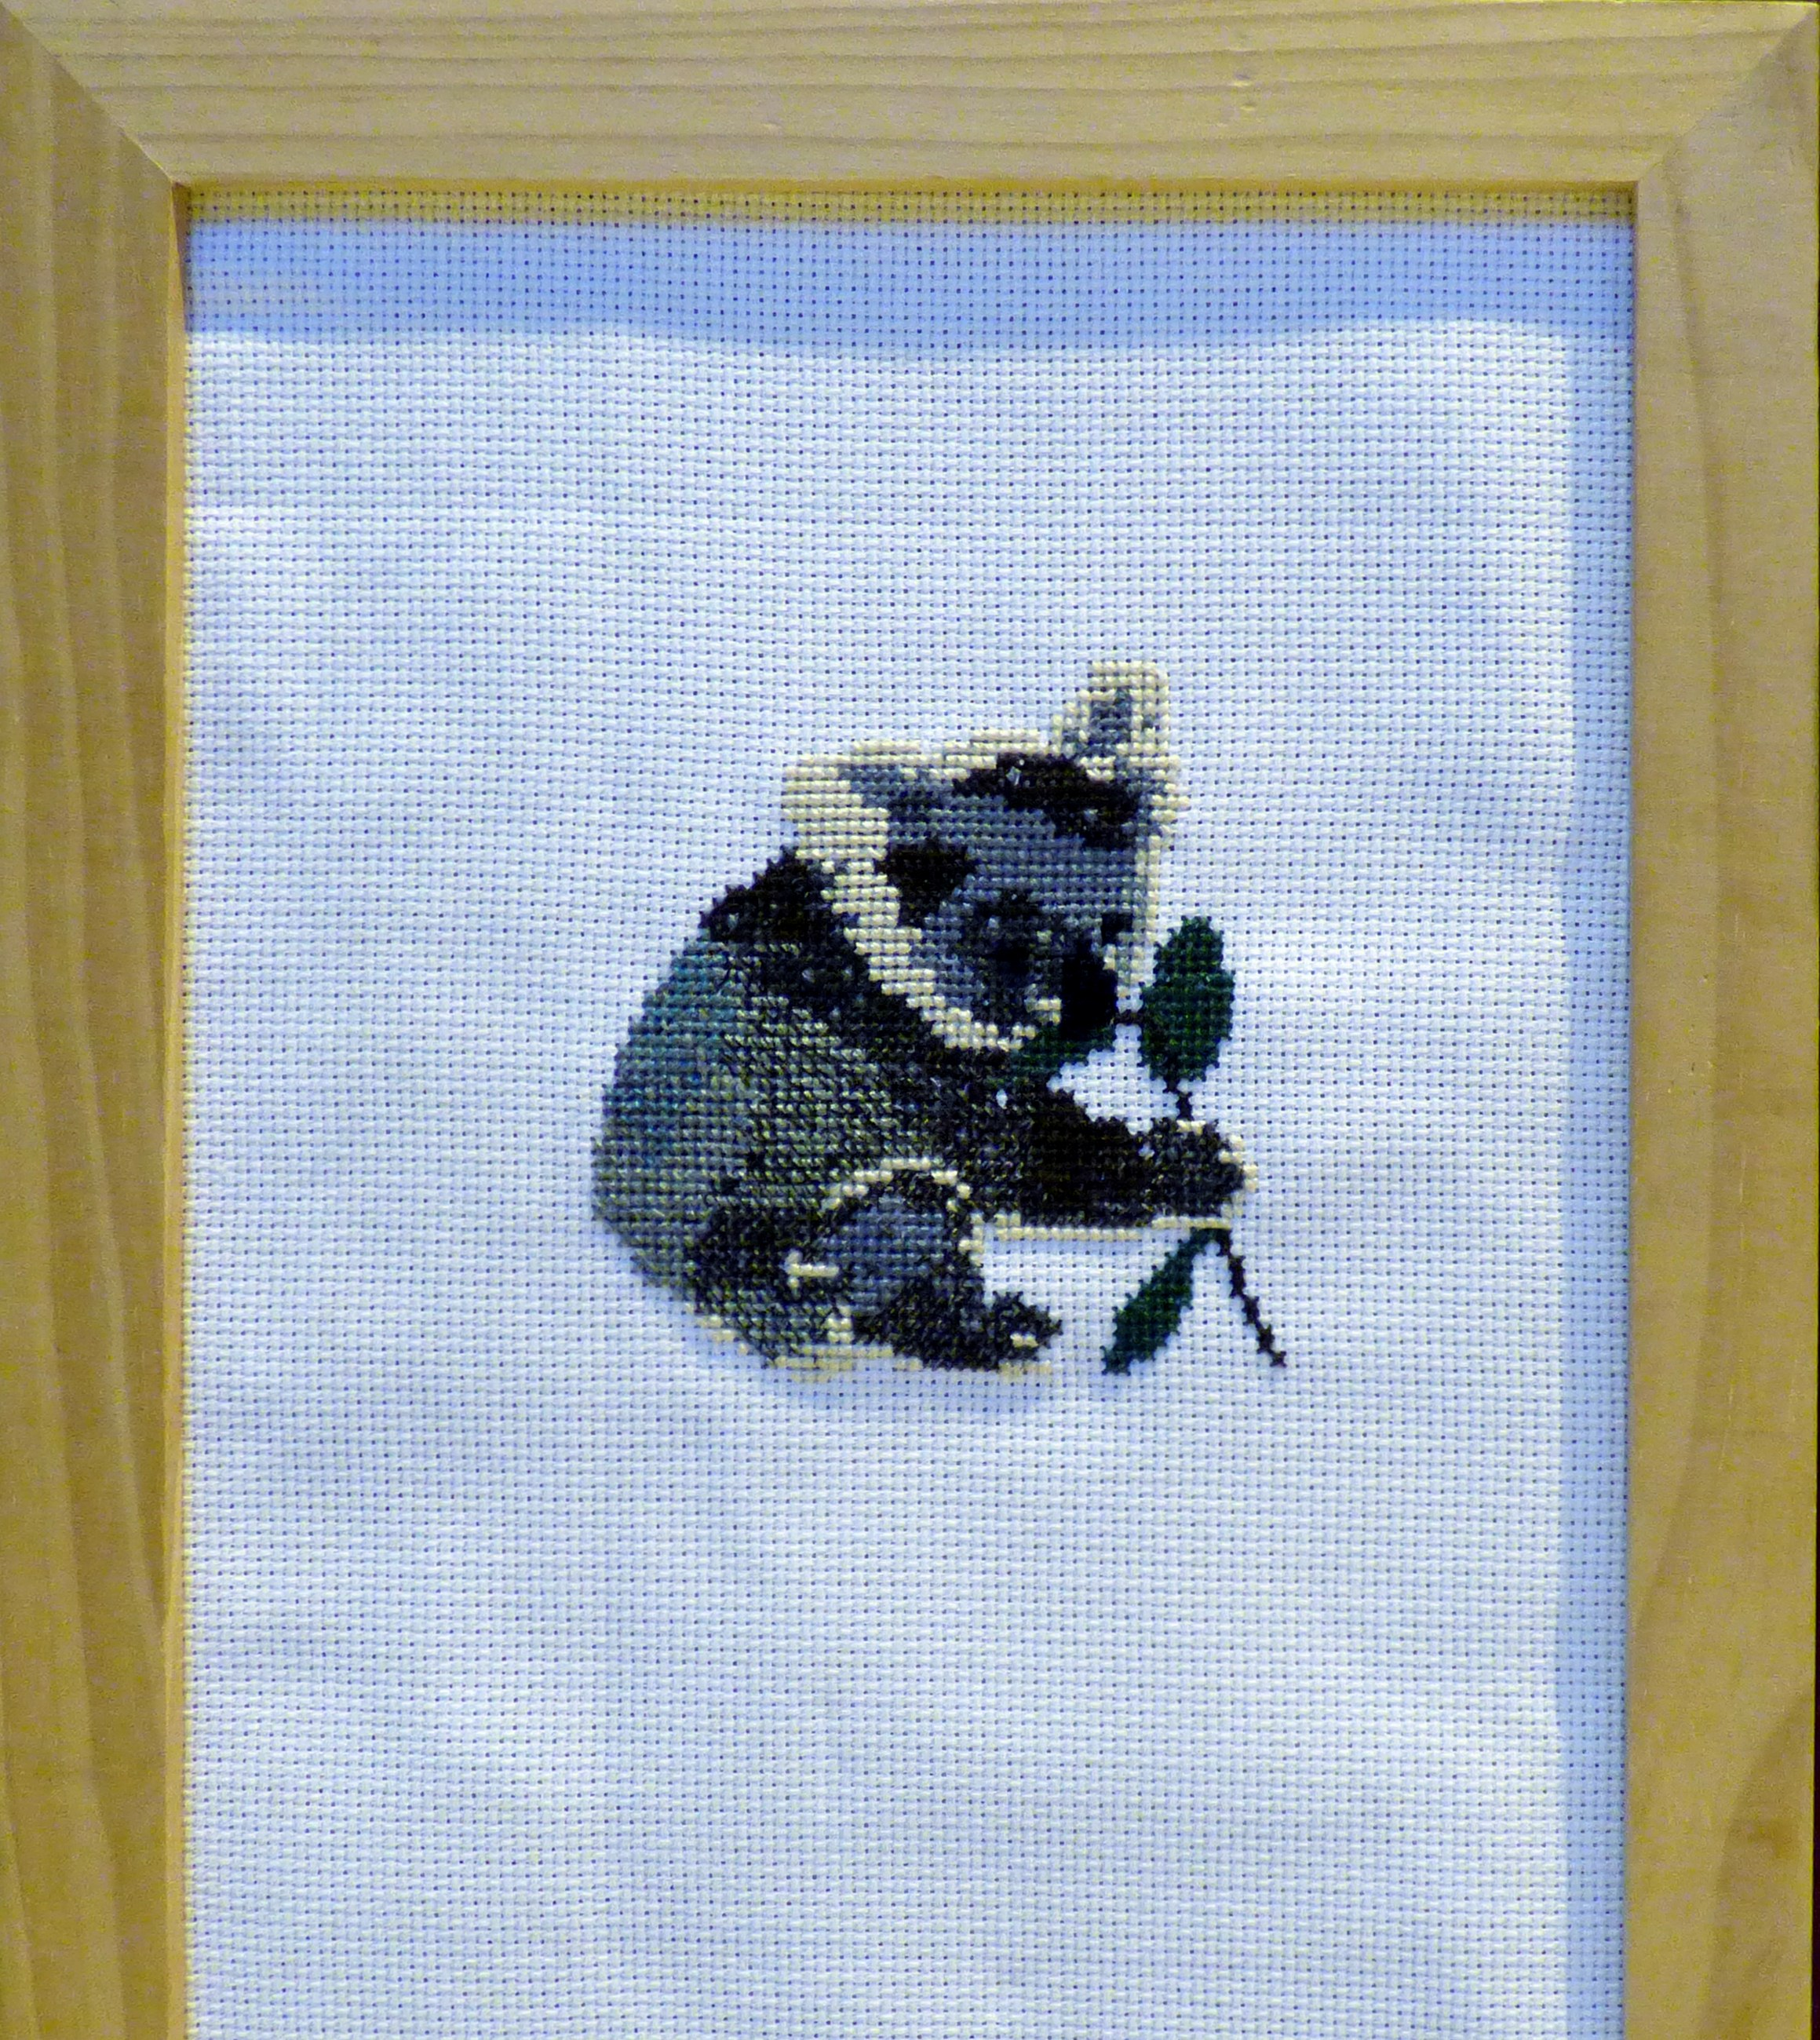 KOALA BEAR EATING EUCALYPTUS LEAF by Jenny Mullis, cross stitch,  Endeavour exhibition, Liverpool Cathedral, Sept 2018